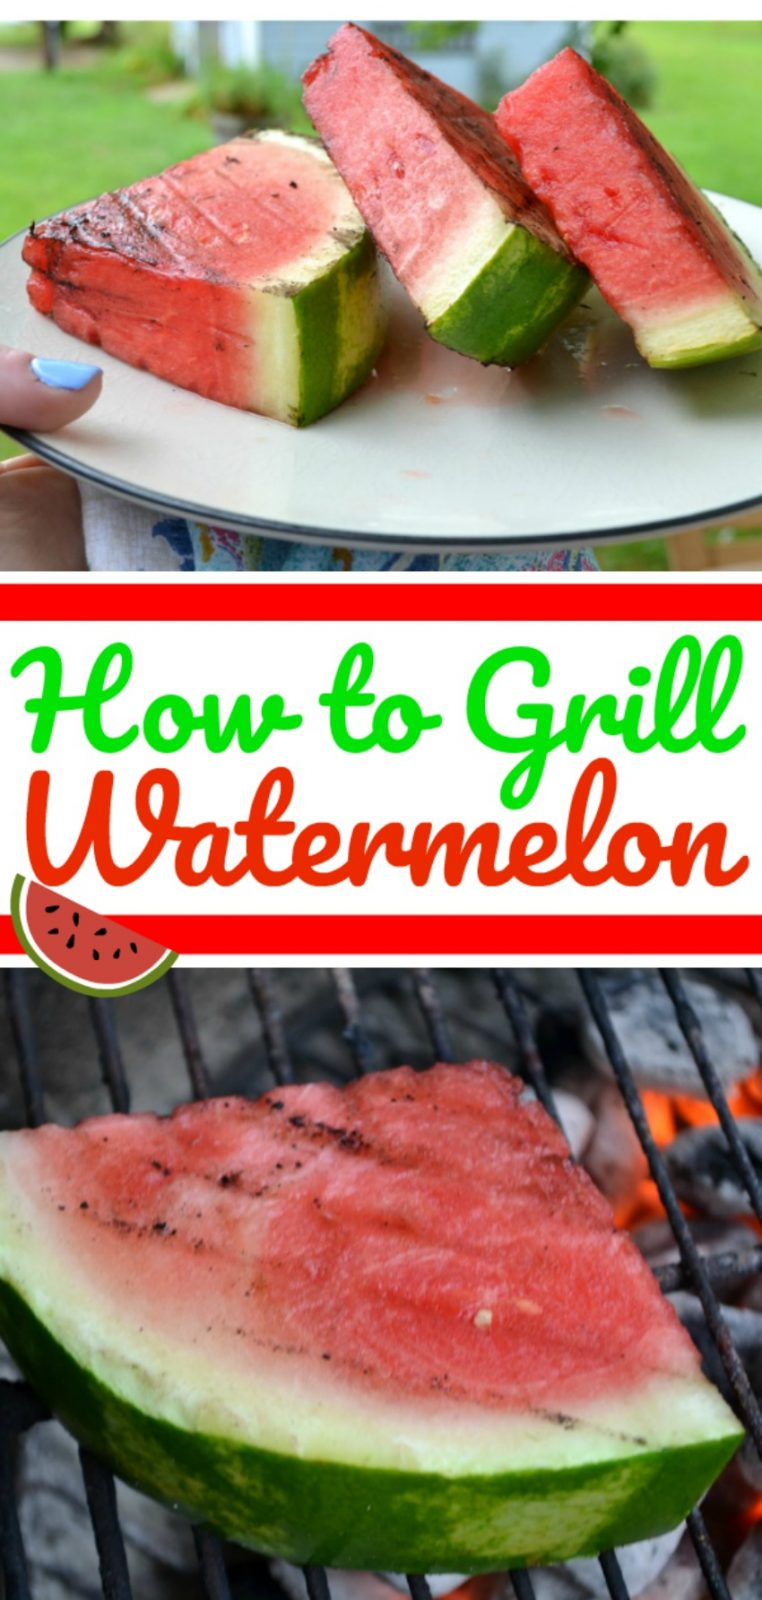 How to Grill Watermelon